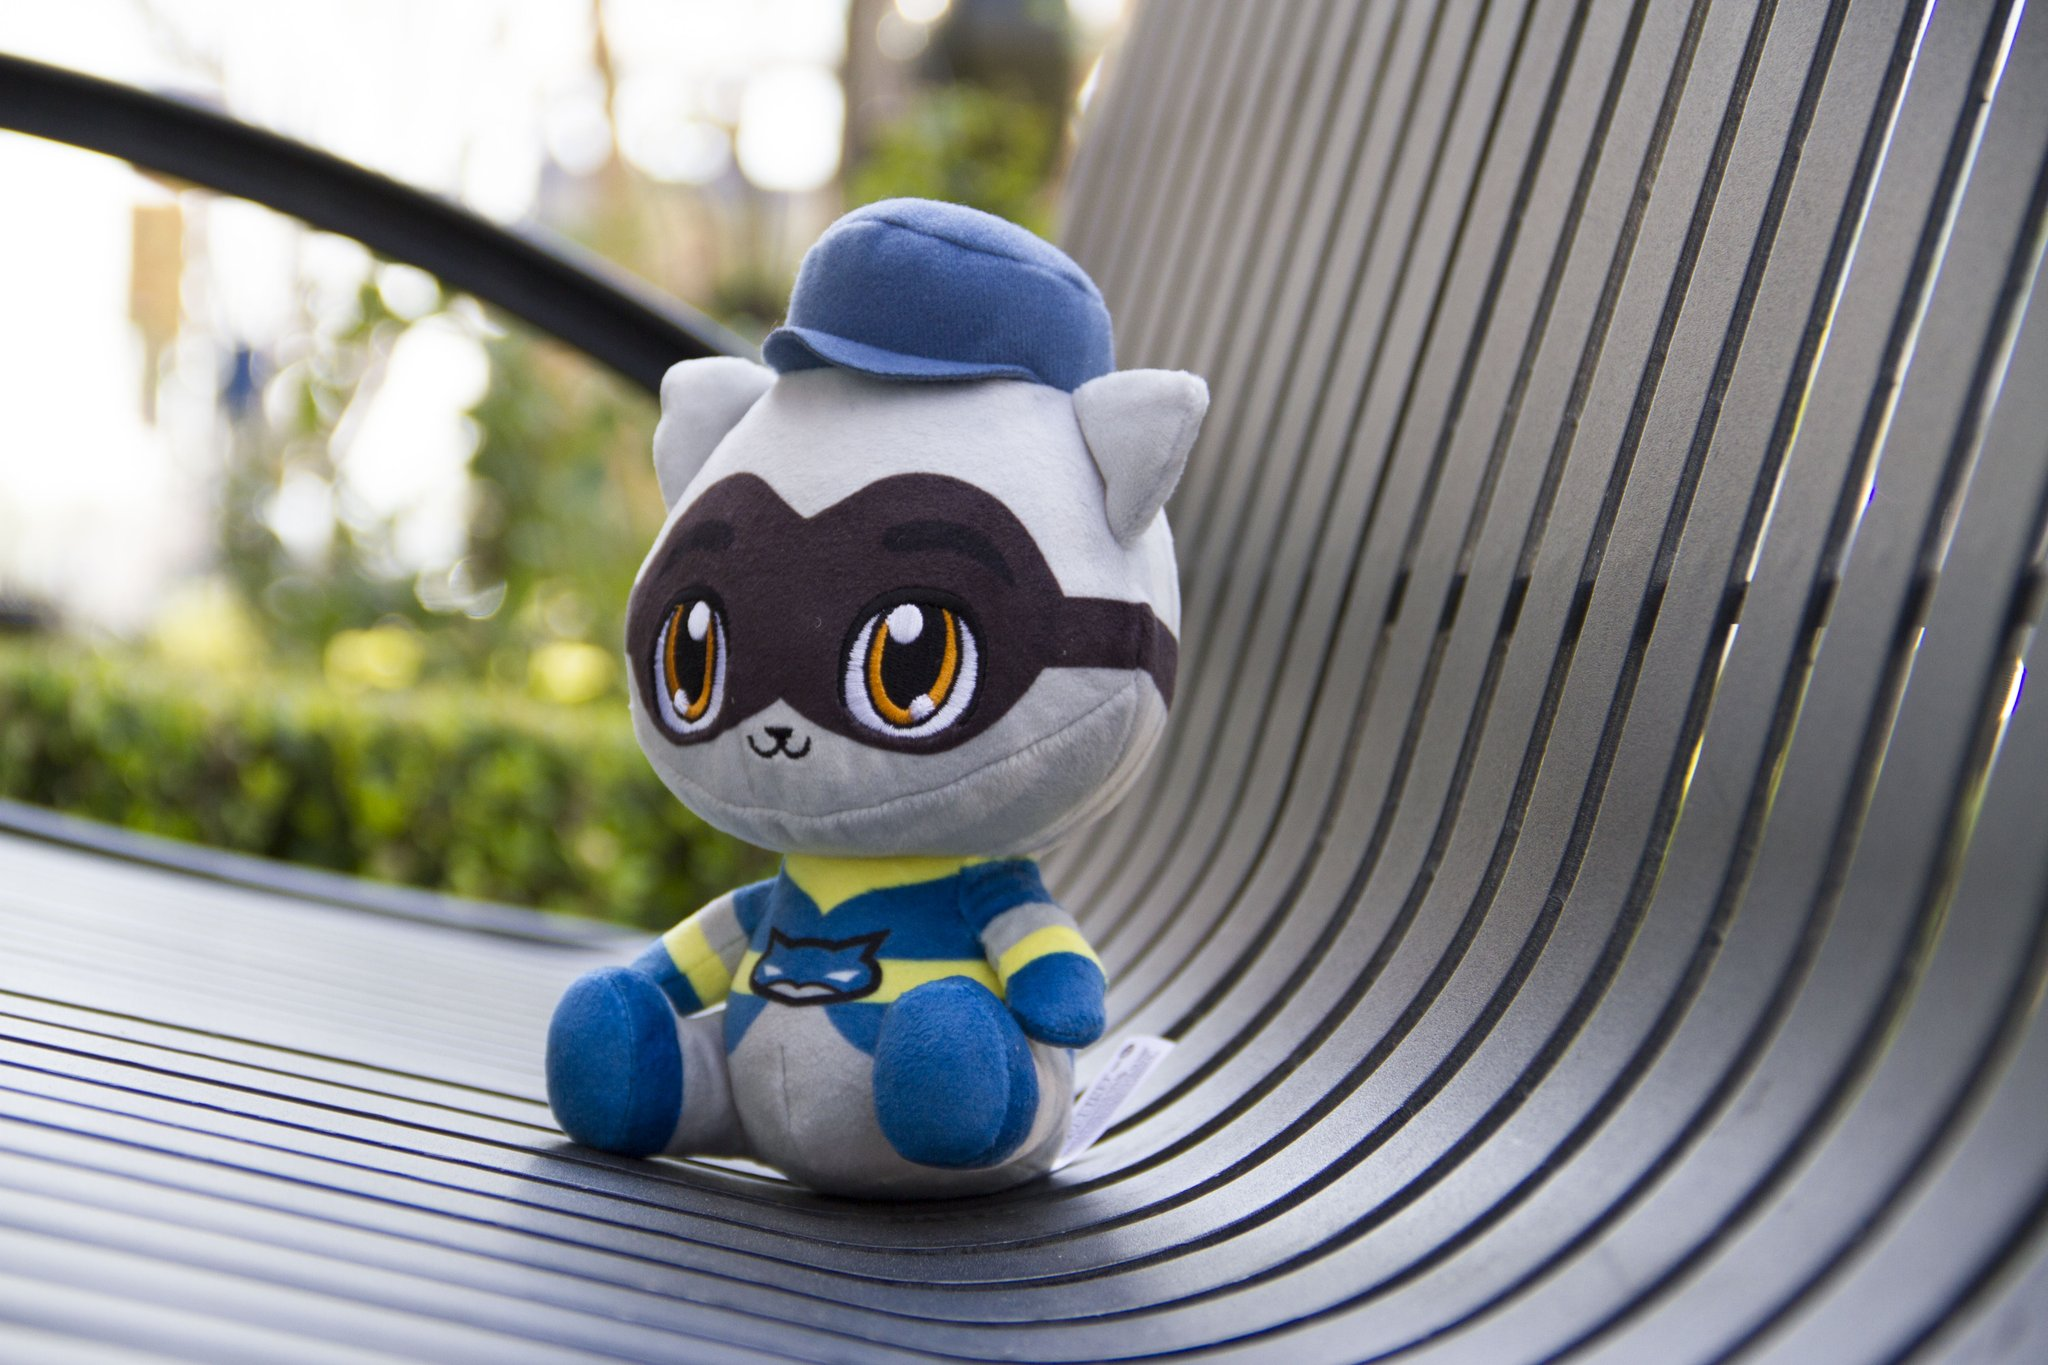 Sly Cooper Stuffed Animal, Stubbins Plush On Twitter After All There S No Honor No Challenge No Fun In Stealing From Ordinary People You Rip Off A Master Criminal And You Know You Re A Master Thief